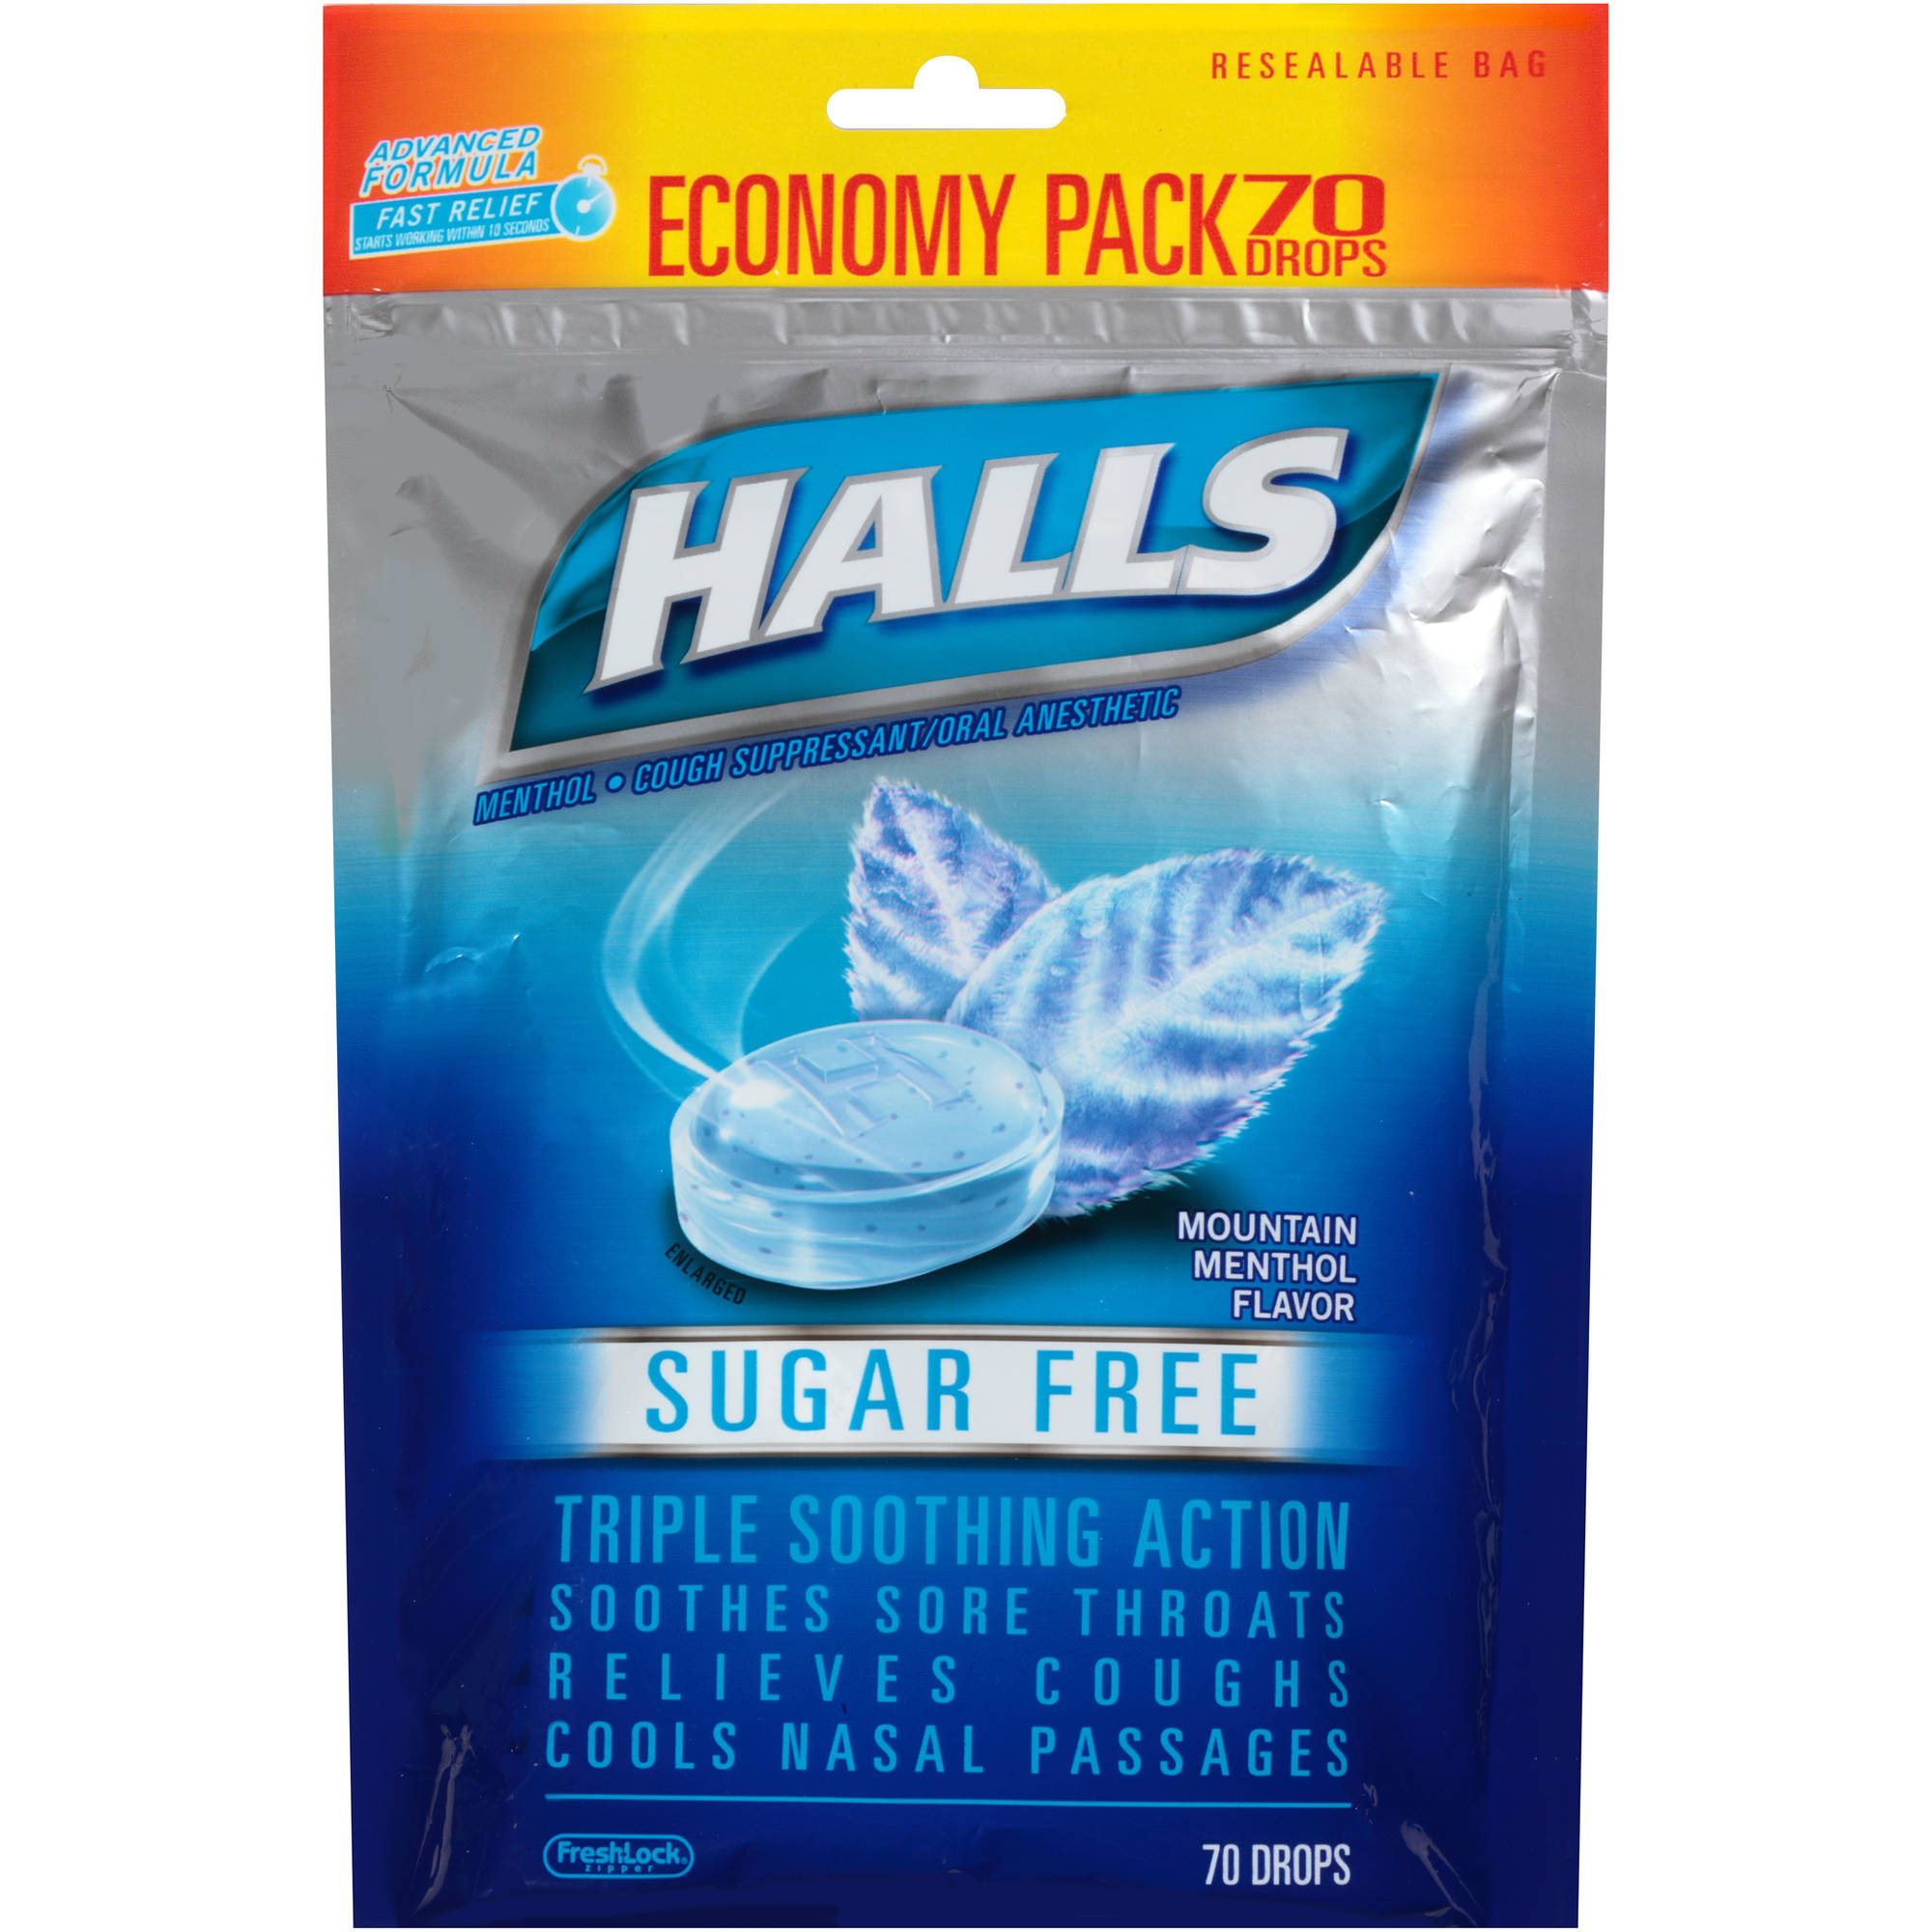 Halls Sugar Free Mountain Menthol Flavor Cough Suppressant/Oral Anesthetic Drops, 70 count